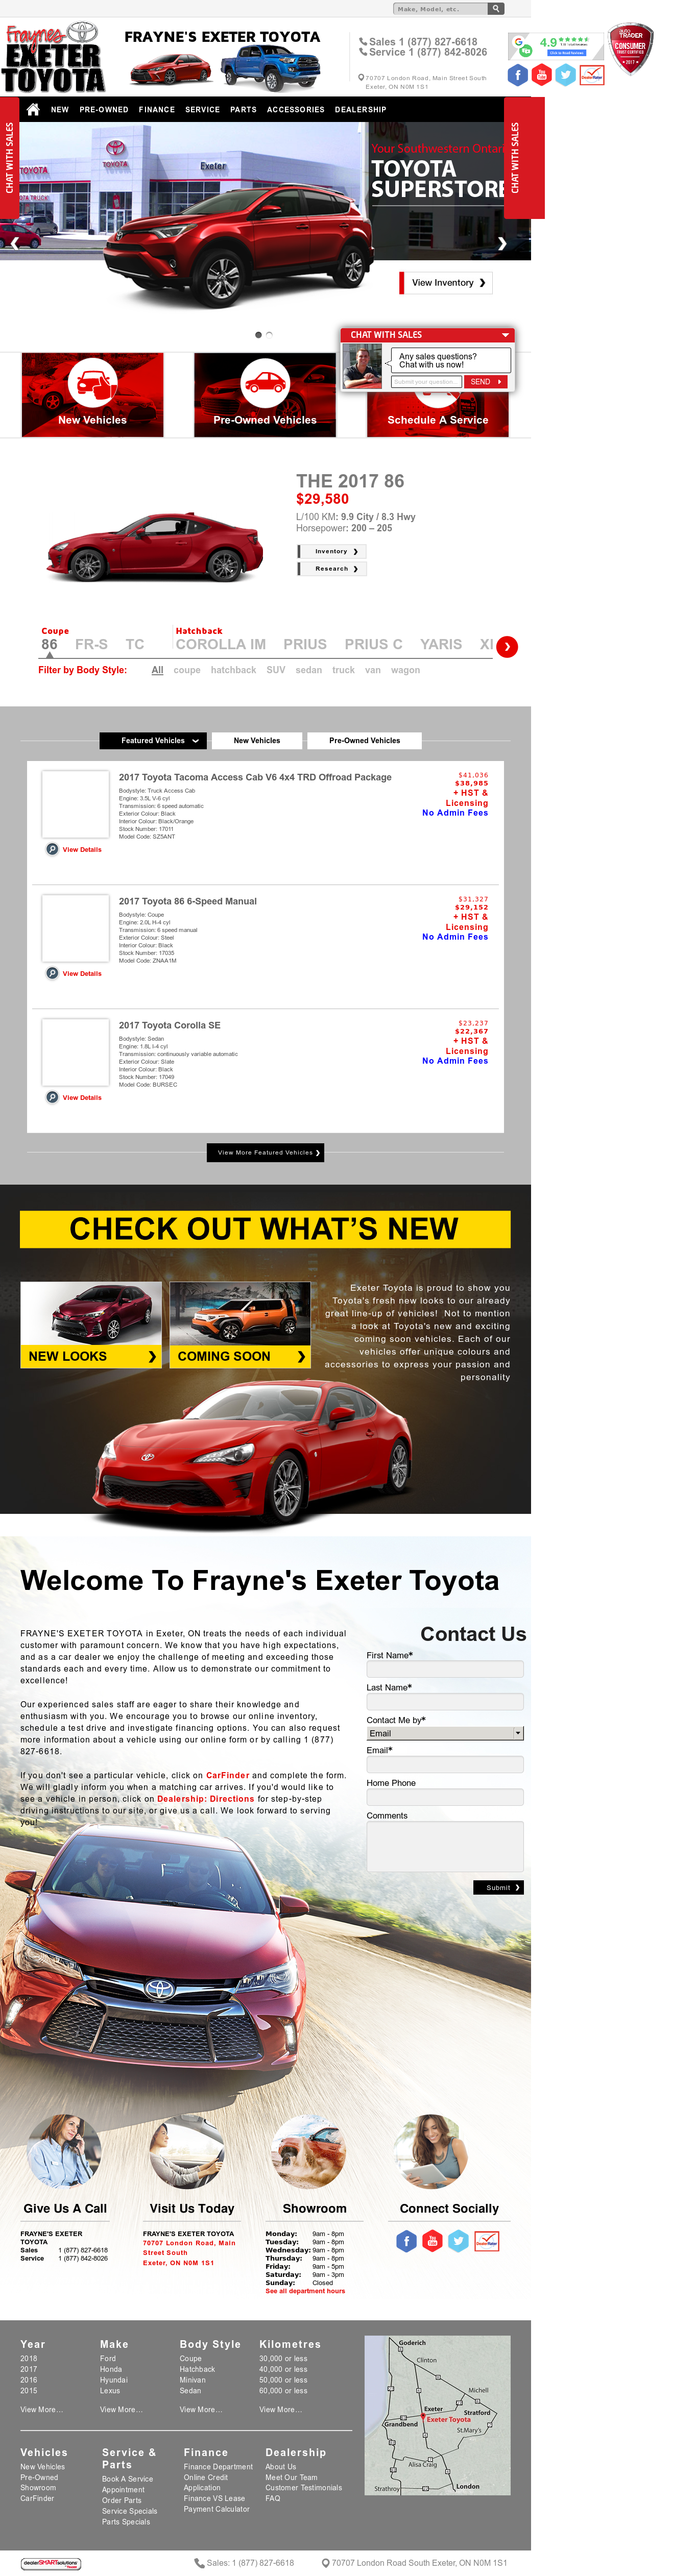 Exeter Toyota Competitors, Revenue and Employees - Owler Company Profile